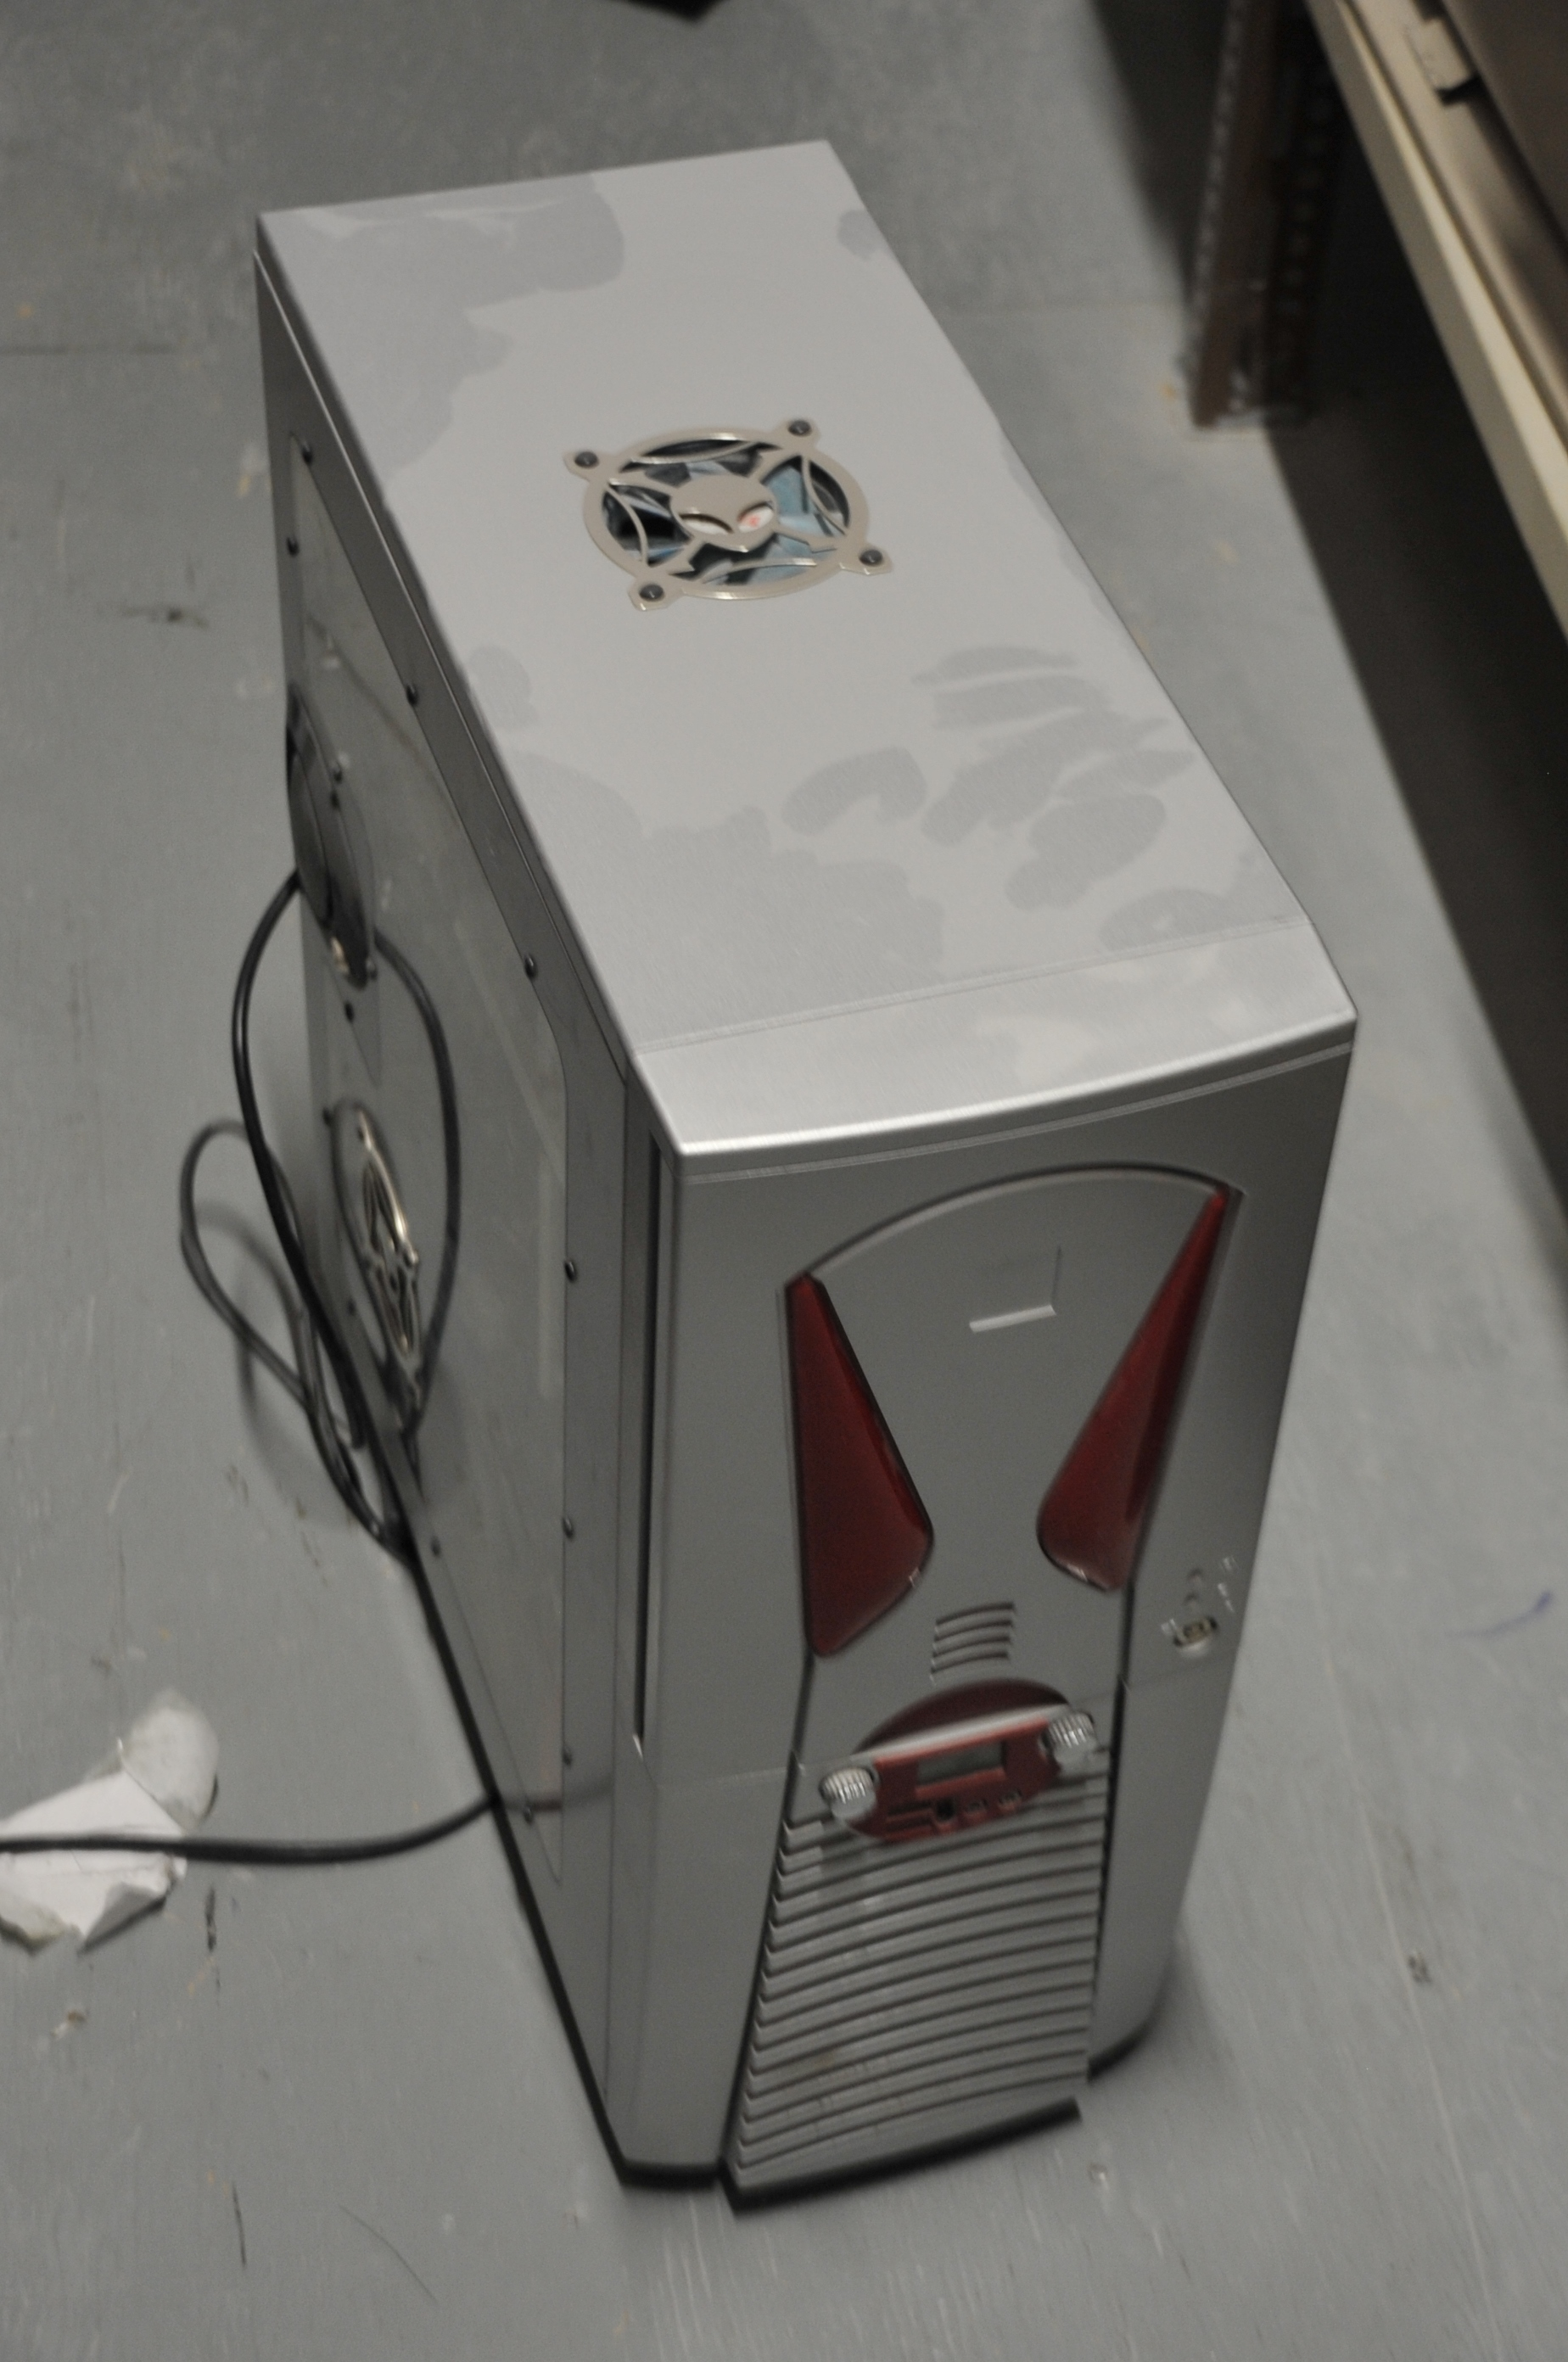 Antec Computers - Image 2 of 2